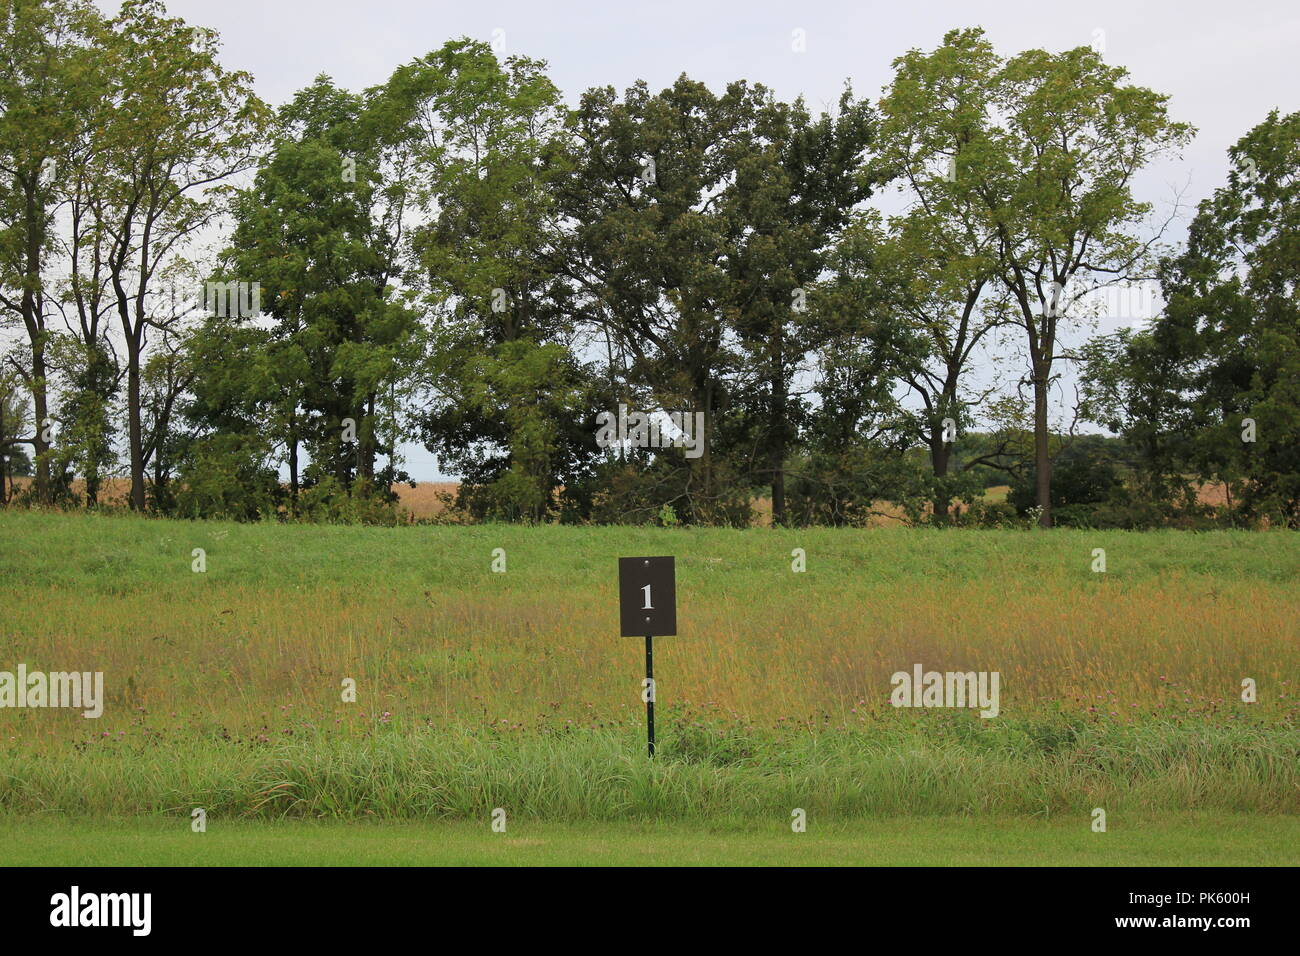 Undeveloped Lot number 1 in a residential development in rural Marengo, Illinois, McHenry County. - Stock Image